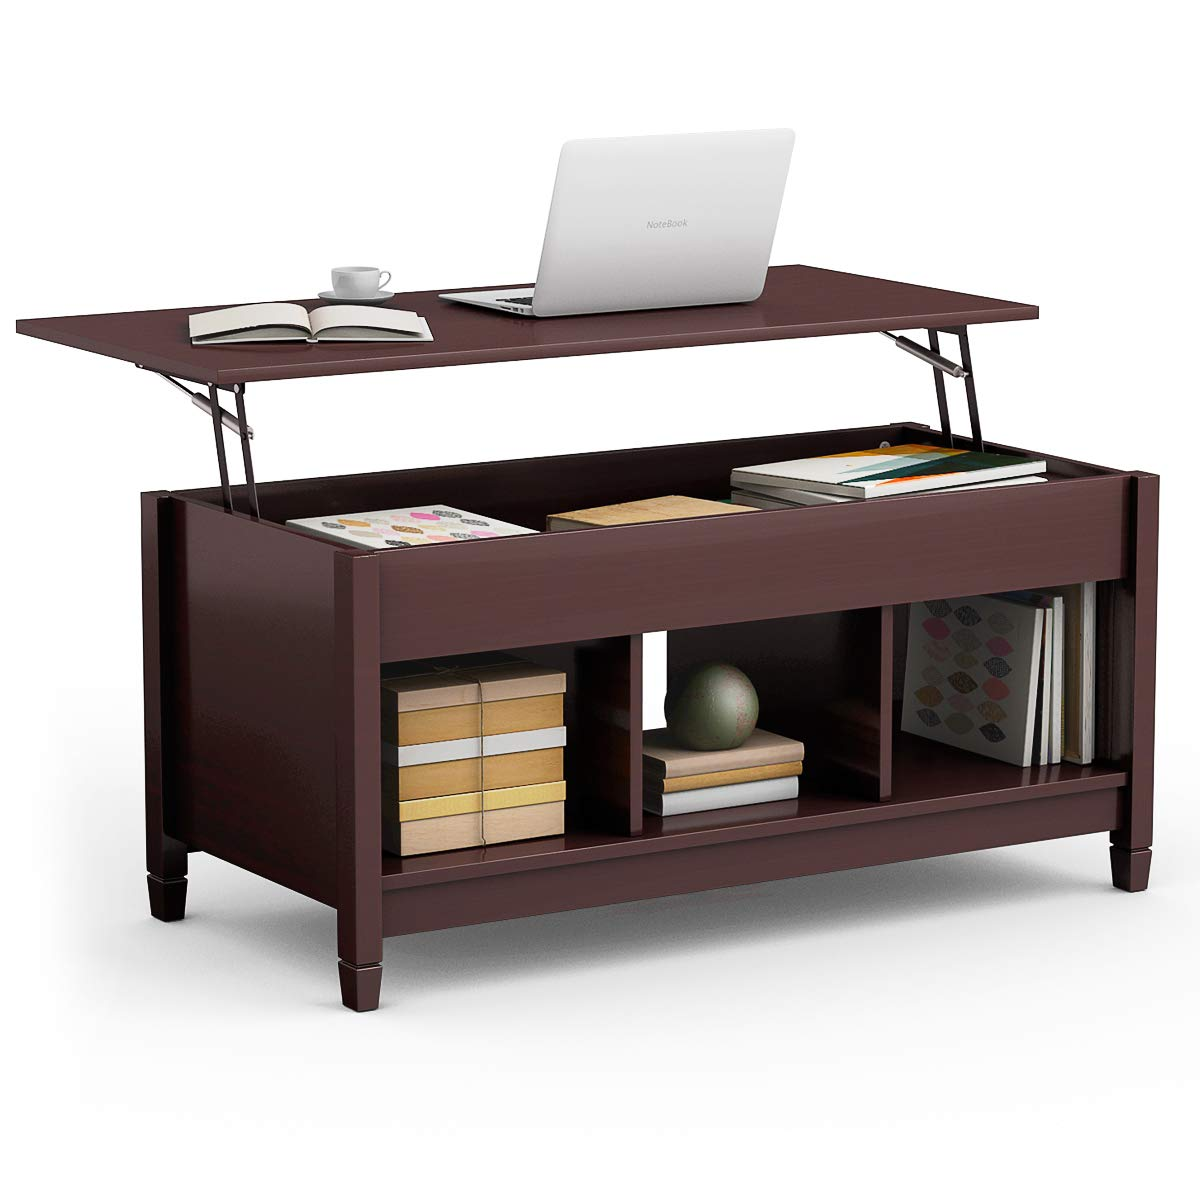 TANGKULA Coffee Table Lift Top Wood Home Living Room Modern Lift Top Storage Coffee Table w/Hidden Compartment Lift Tabletop Furniture by Tangkula